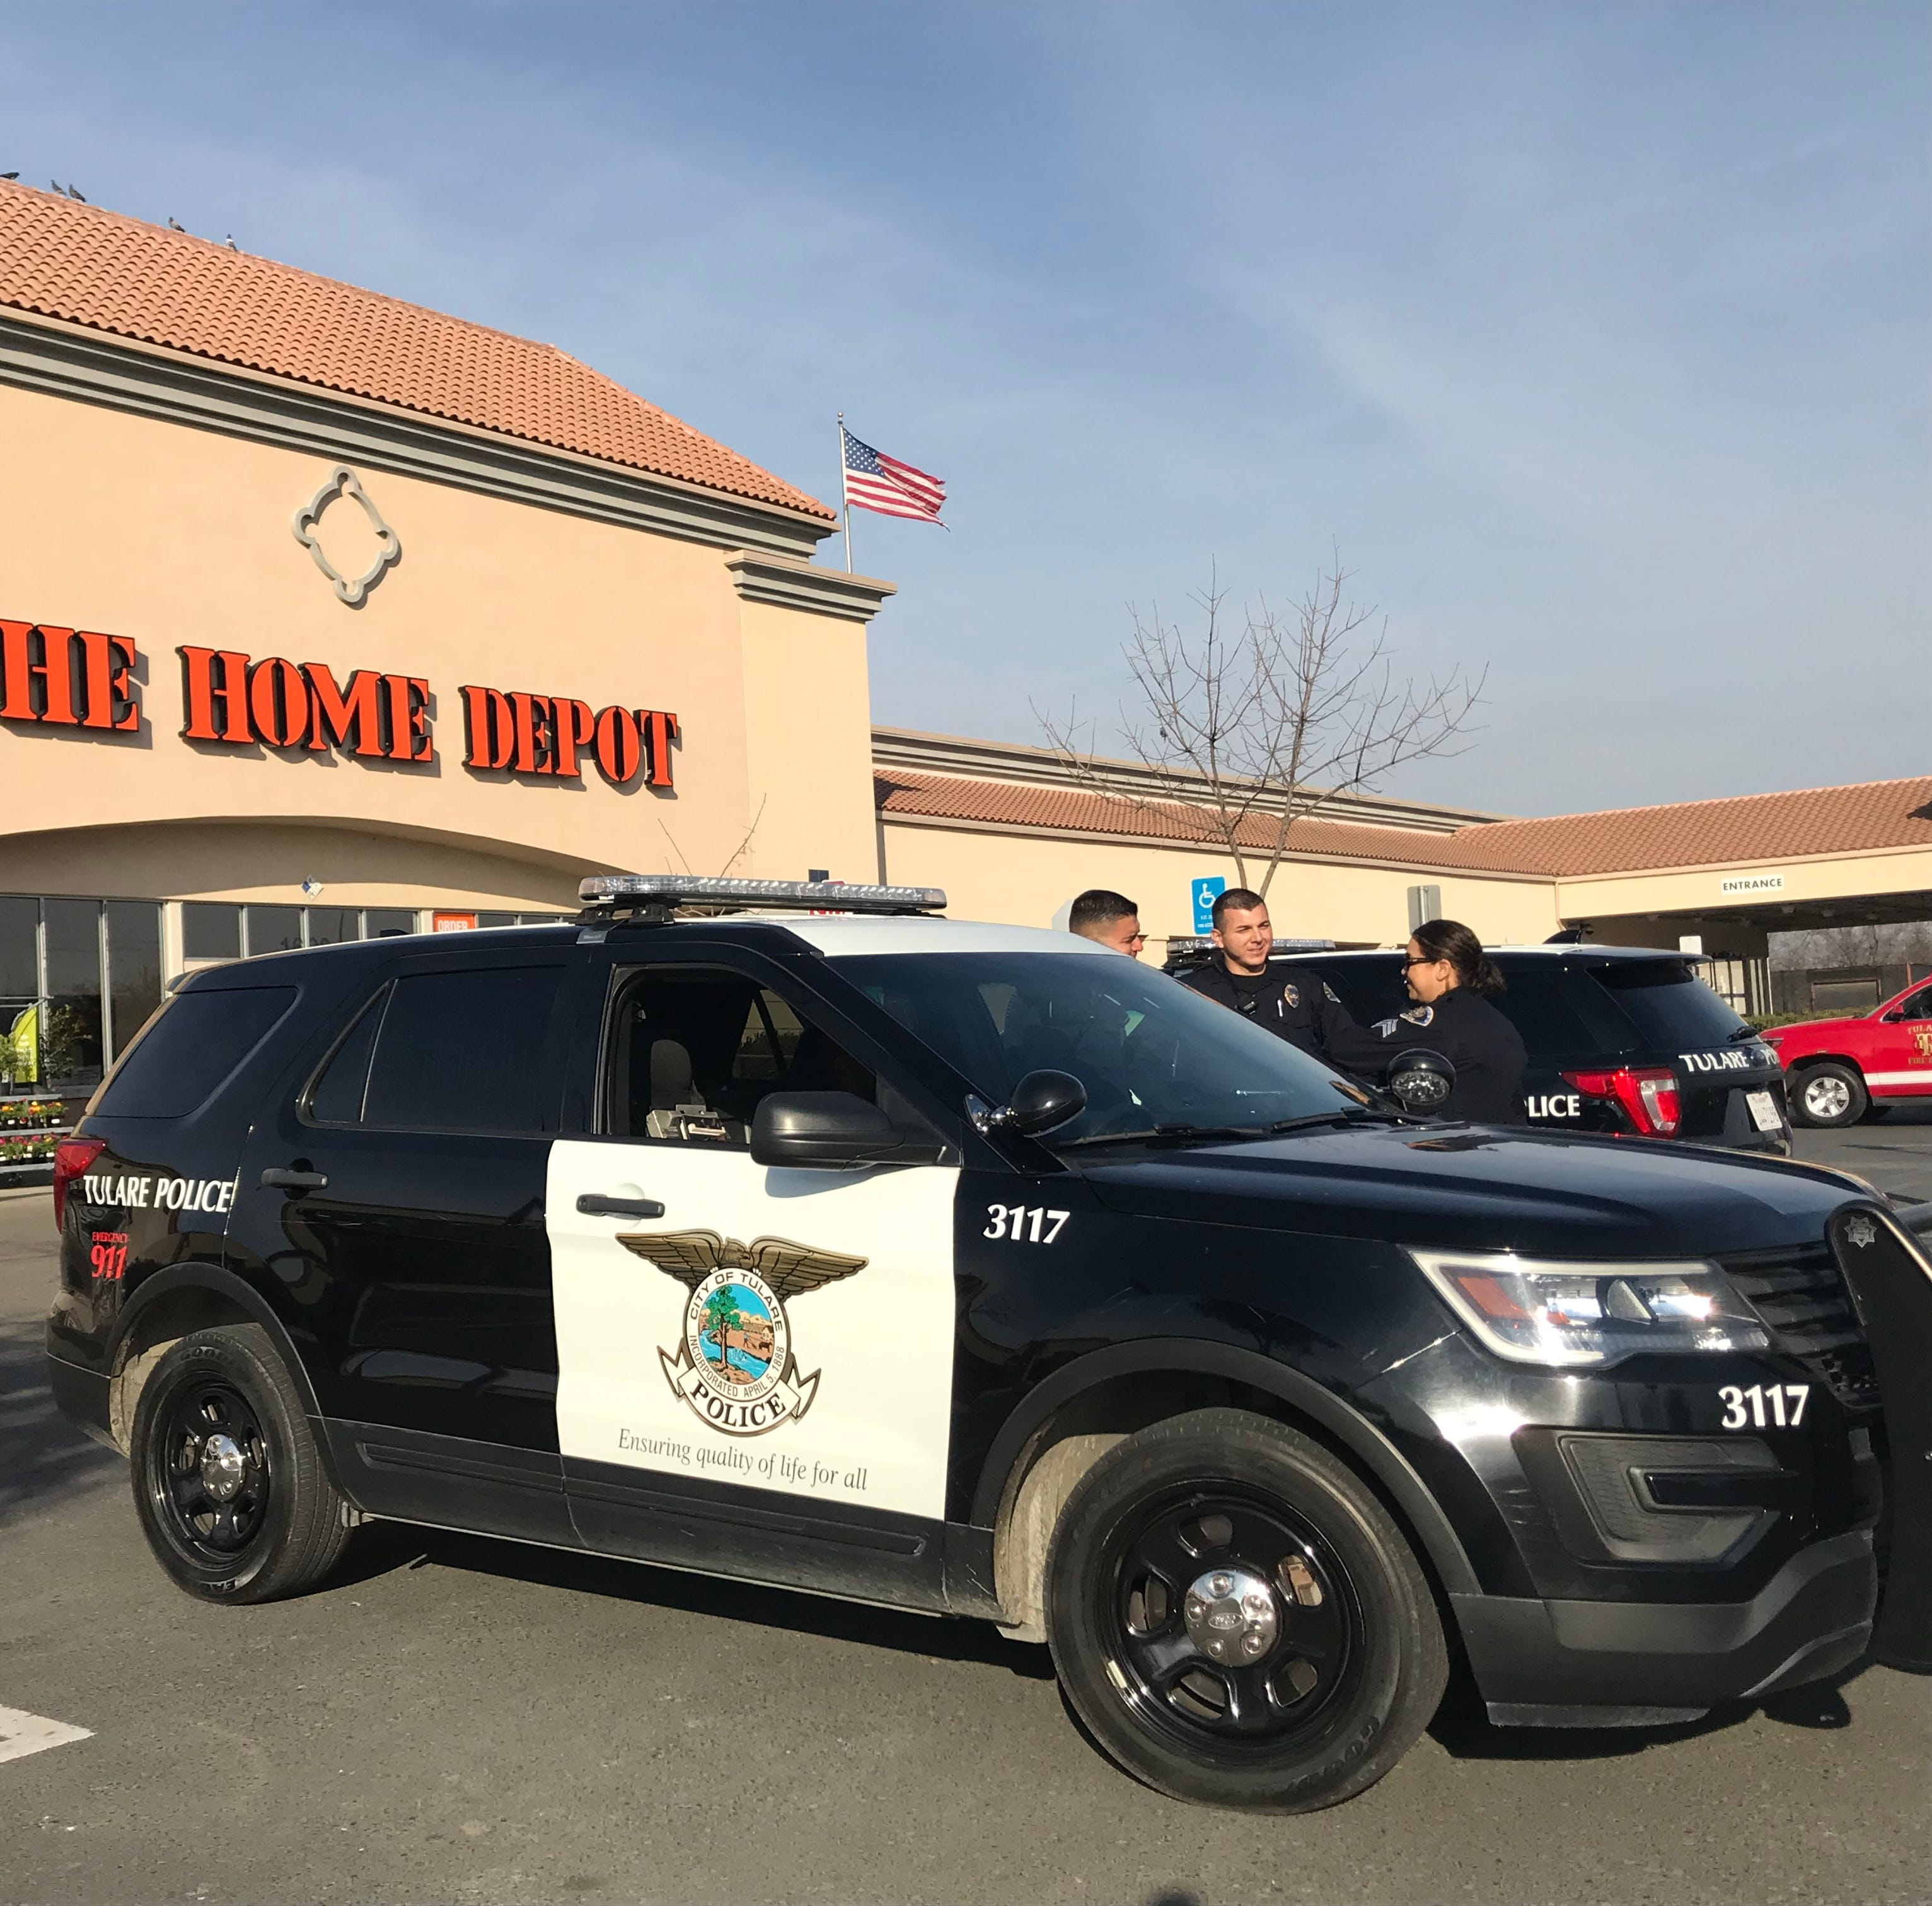 Bomb scare closes Home Depot in Tulare